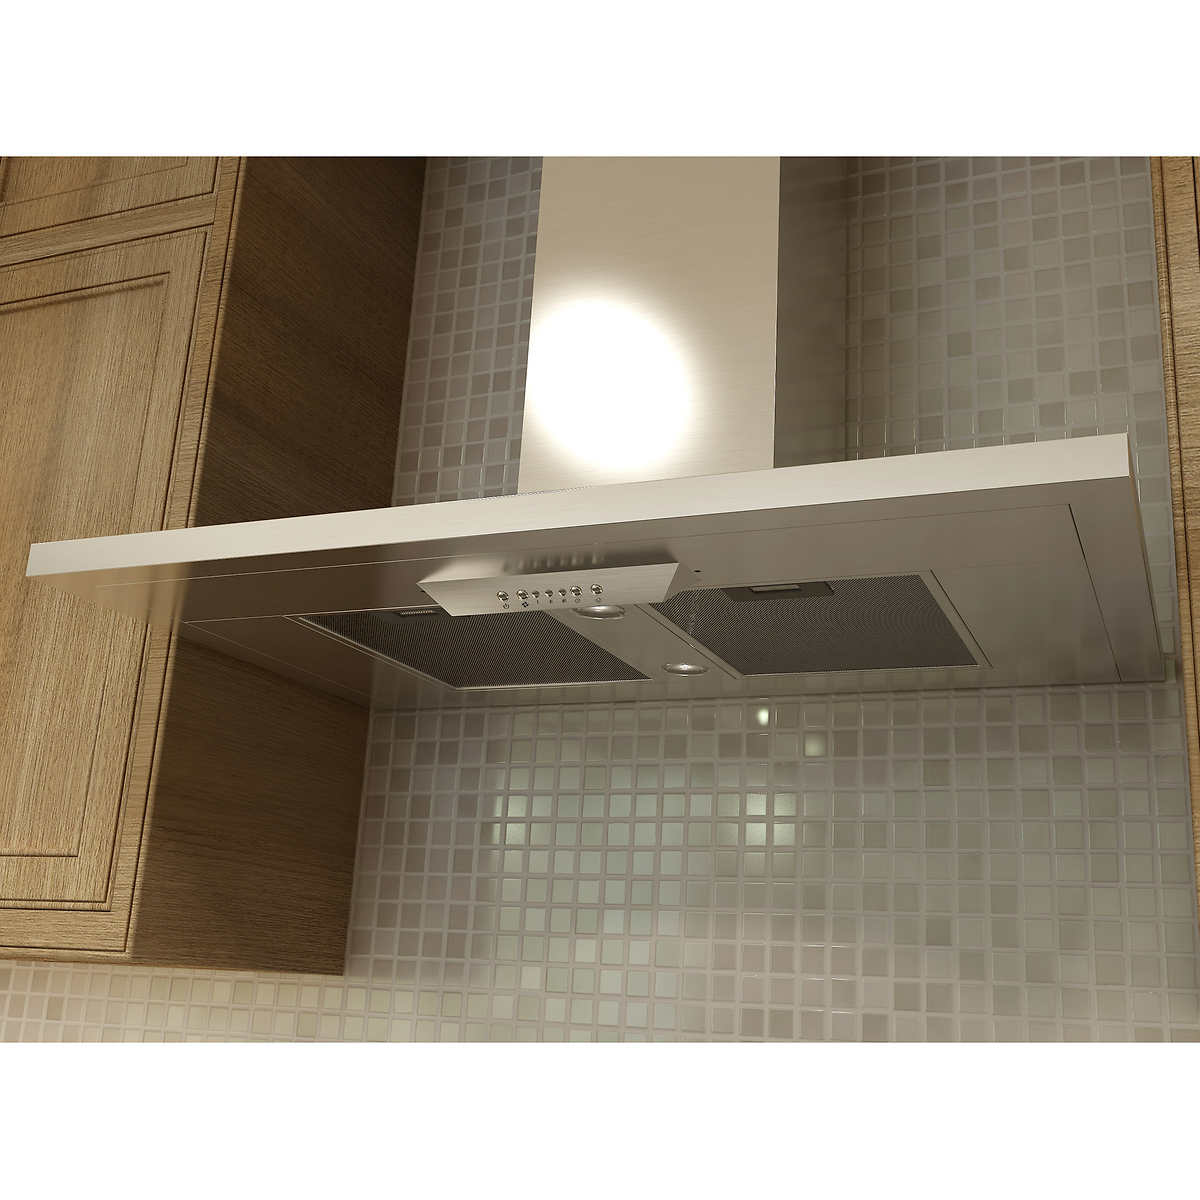 Valore plateau 30 or 36 stainless steel wall mount range hood dailygadgetfo Image collections